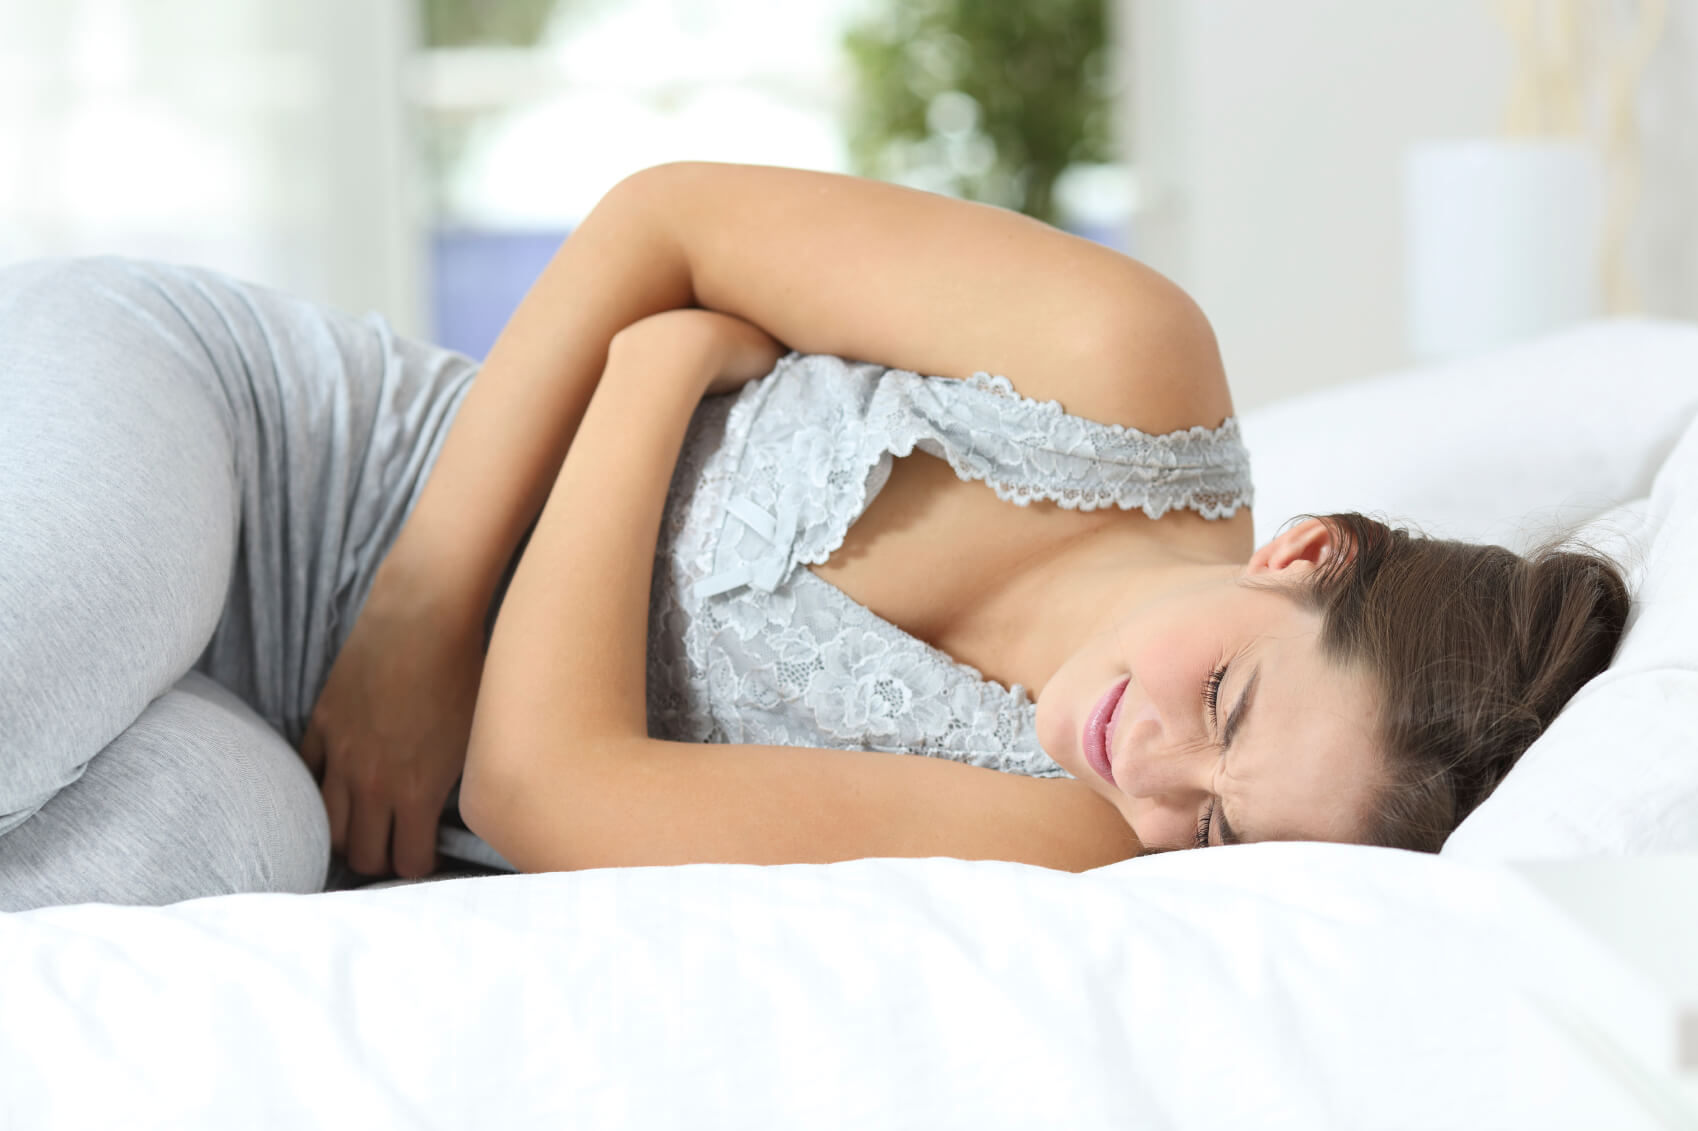 Women suffering from the symptoms of IBS